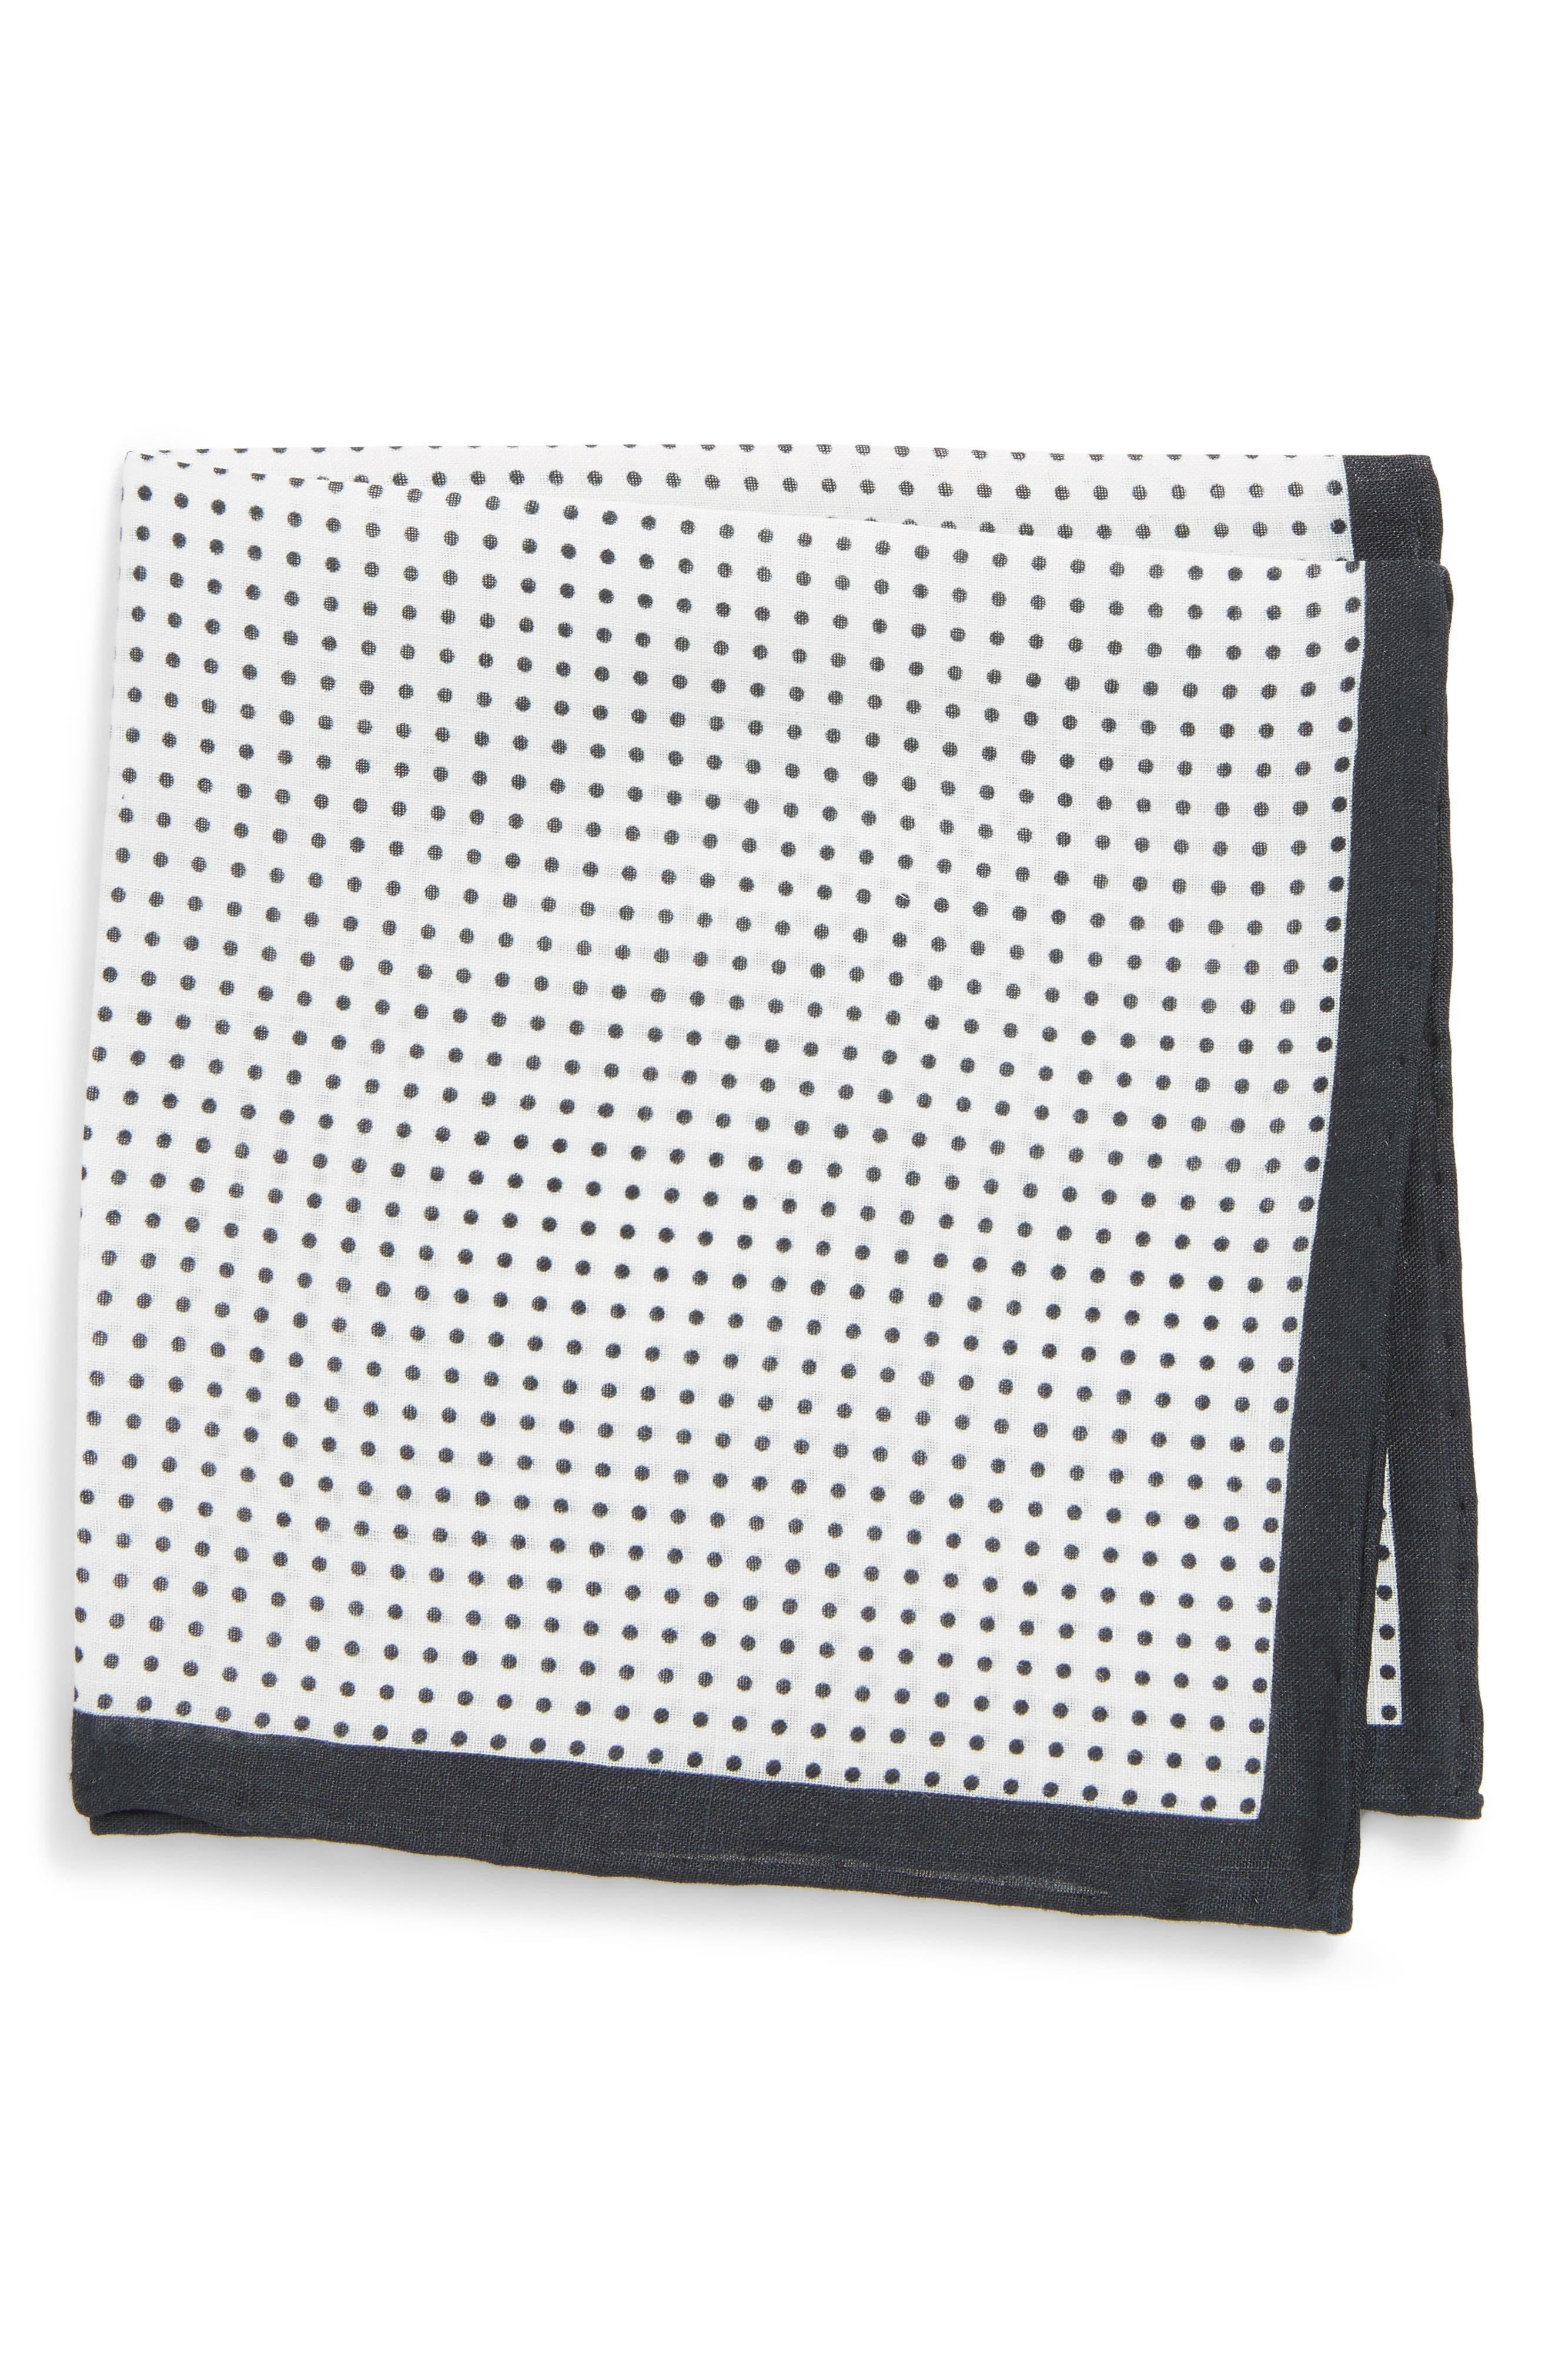 Domino Dot Linen Pocket Square,                         Main,                         color, 001